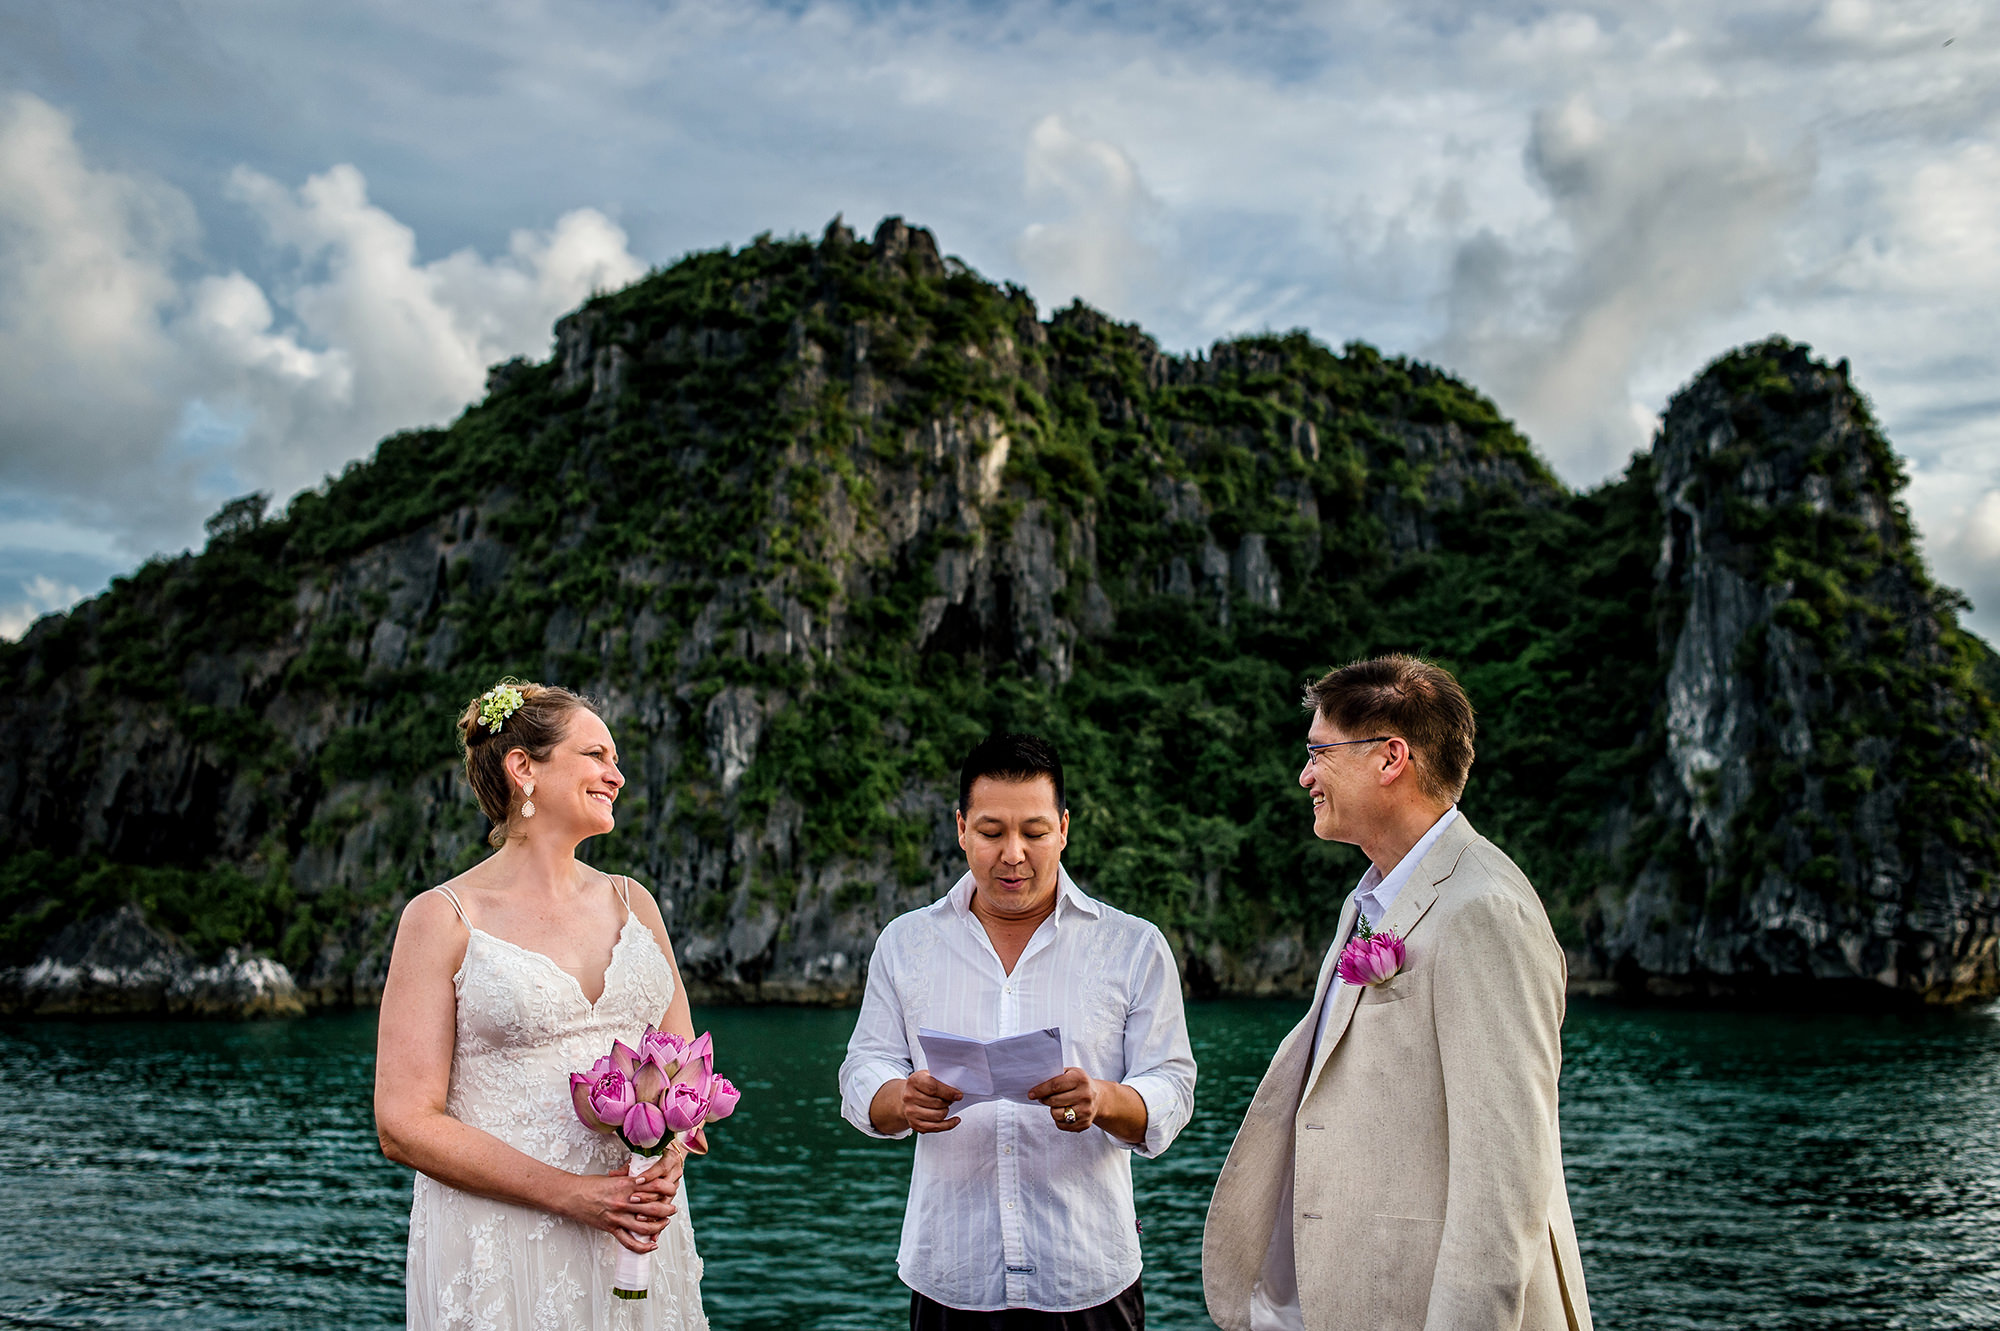 Elopement ceremony on waterfront South East Asia  - Davina + Daniel